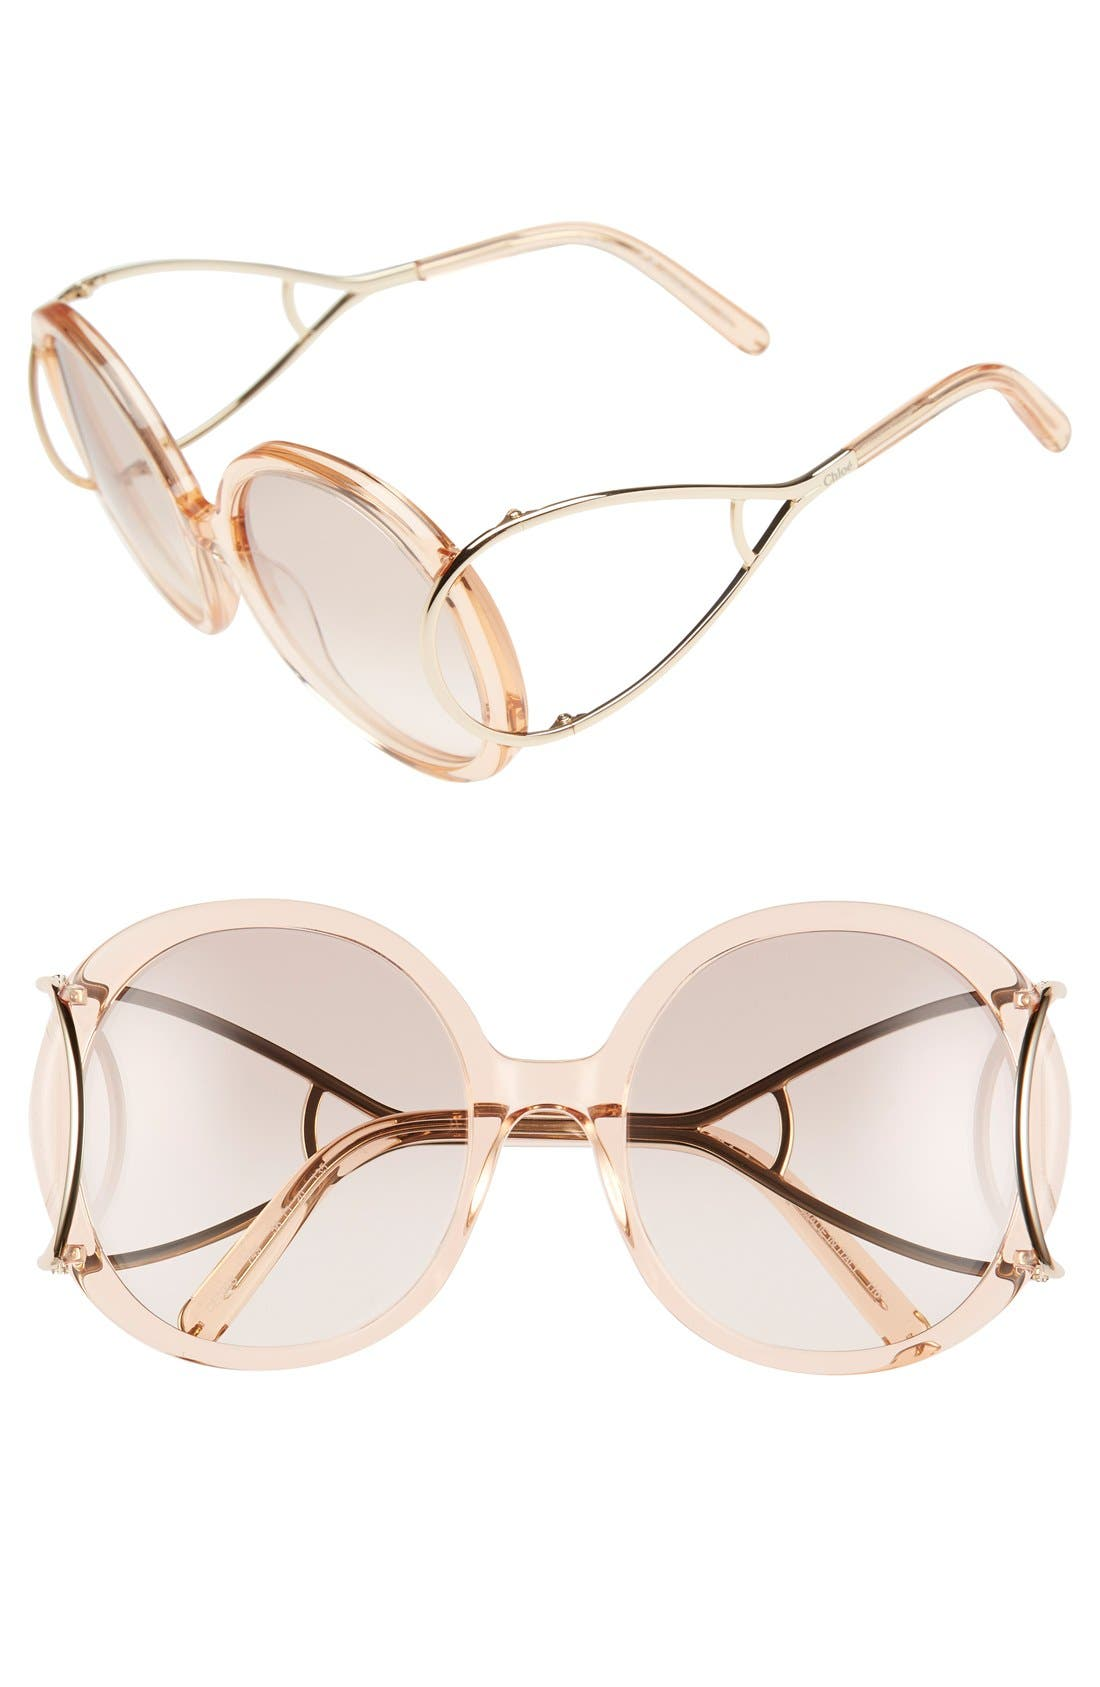 Chloé 'Jackson' 56mm Round Sunglasses